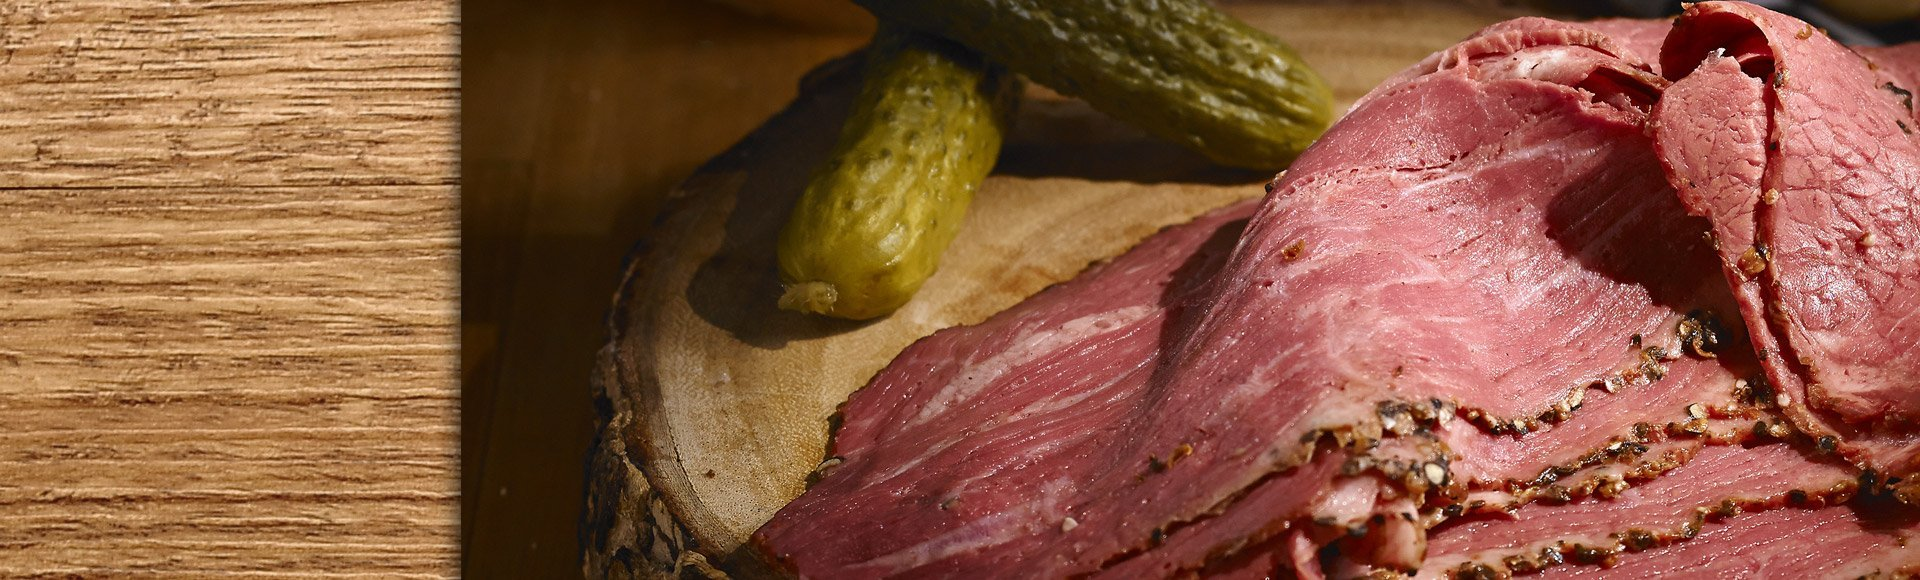 Bison smoked meat sliced